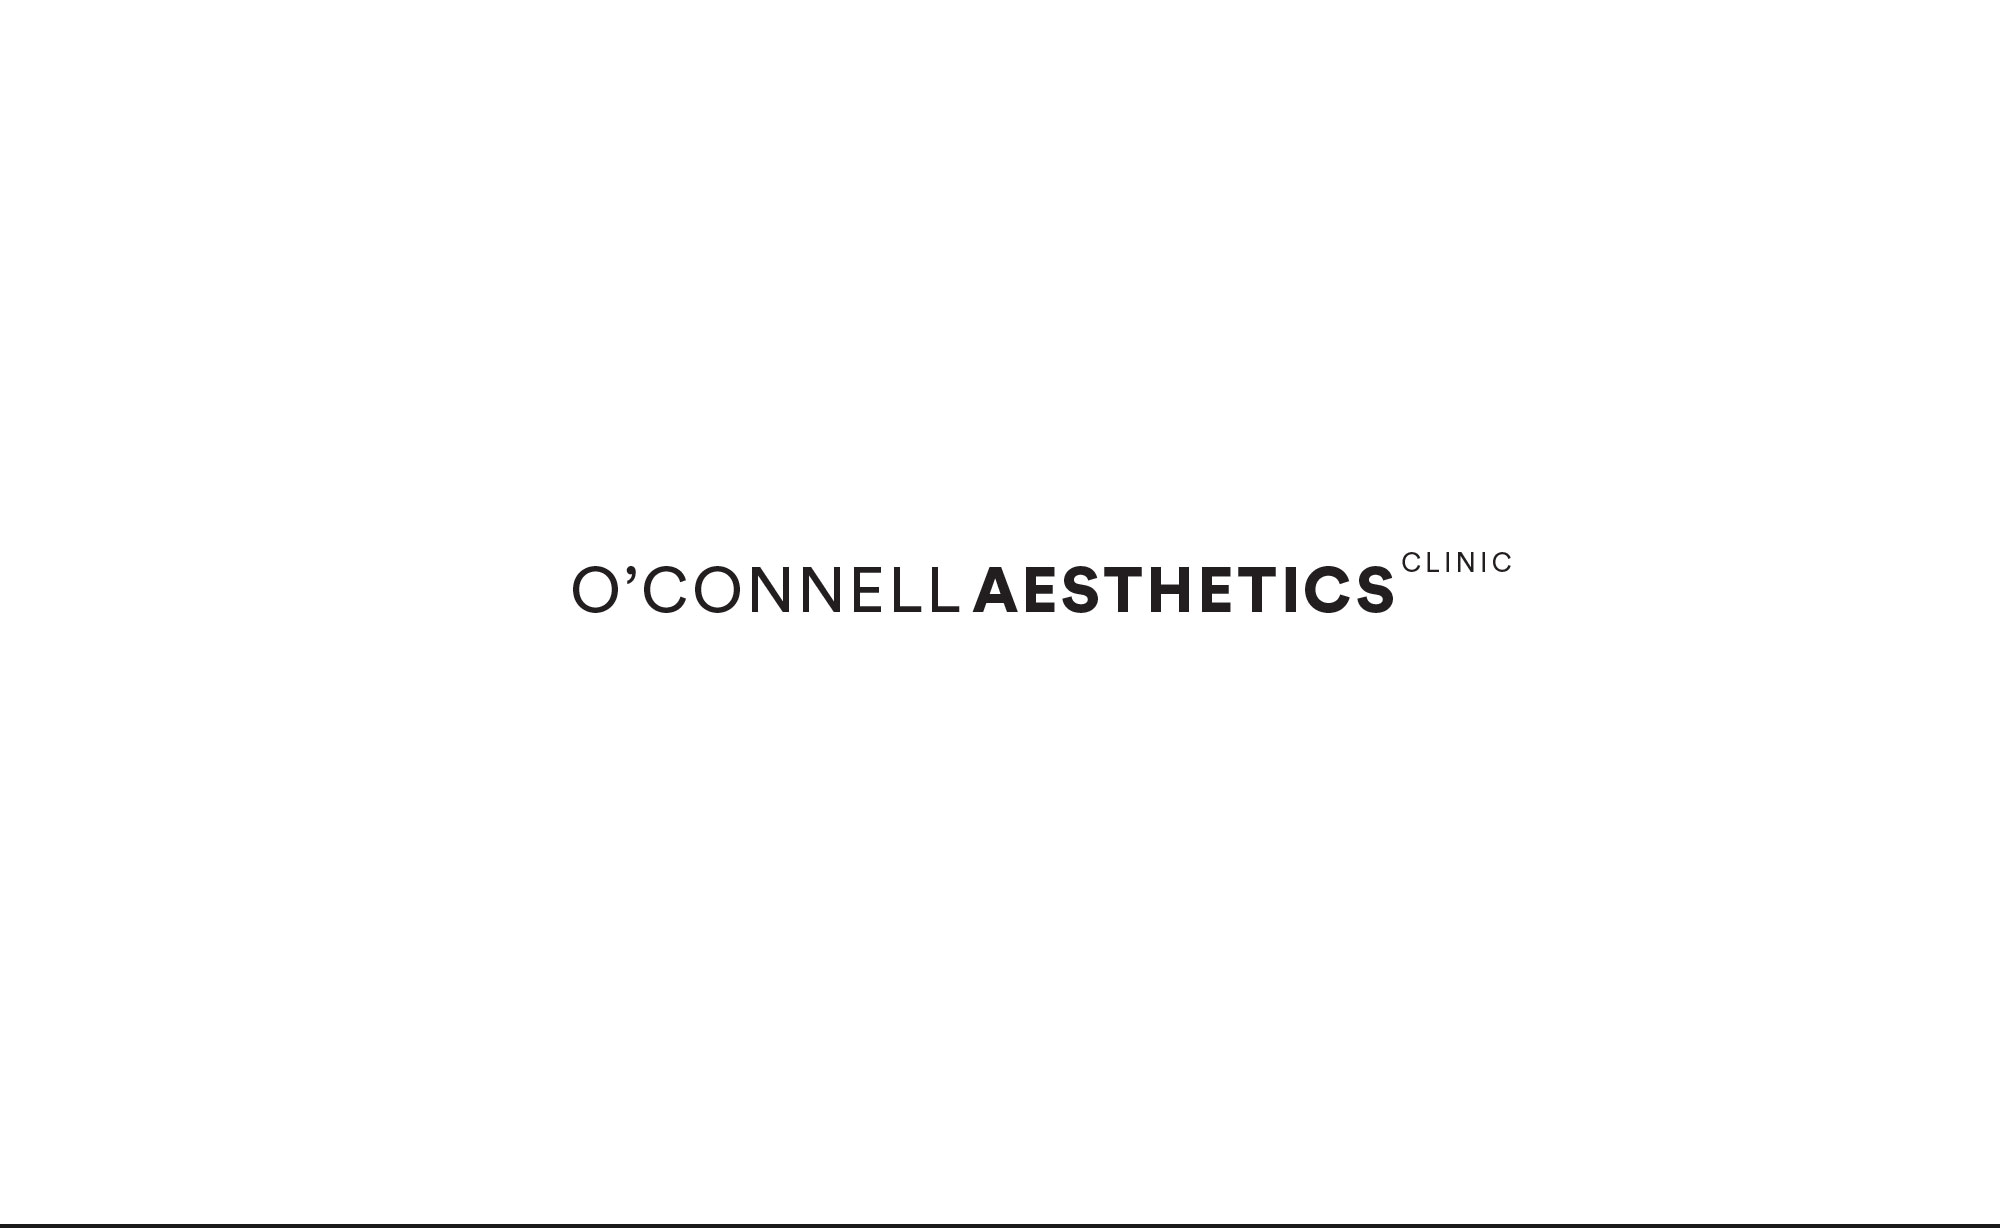 ©-Chris-Rae-Design-Sydney-O'Connell-Aesthetics-Clinic-Dentist-Branding-02.jpg